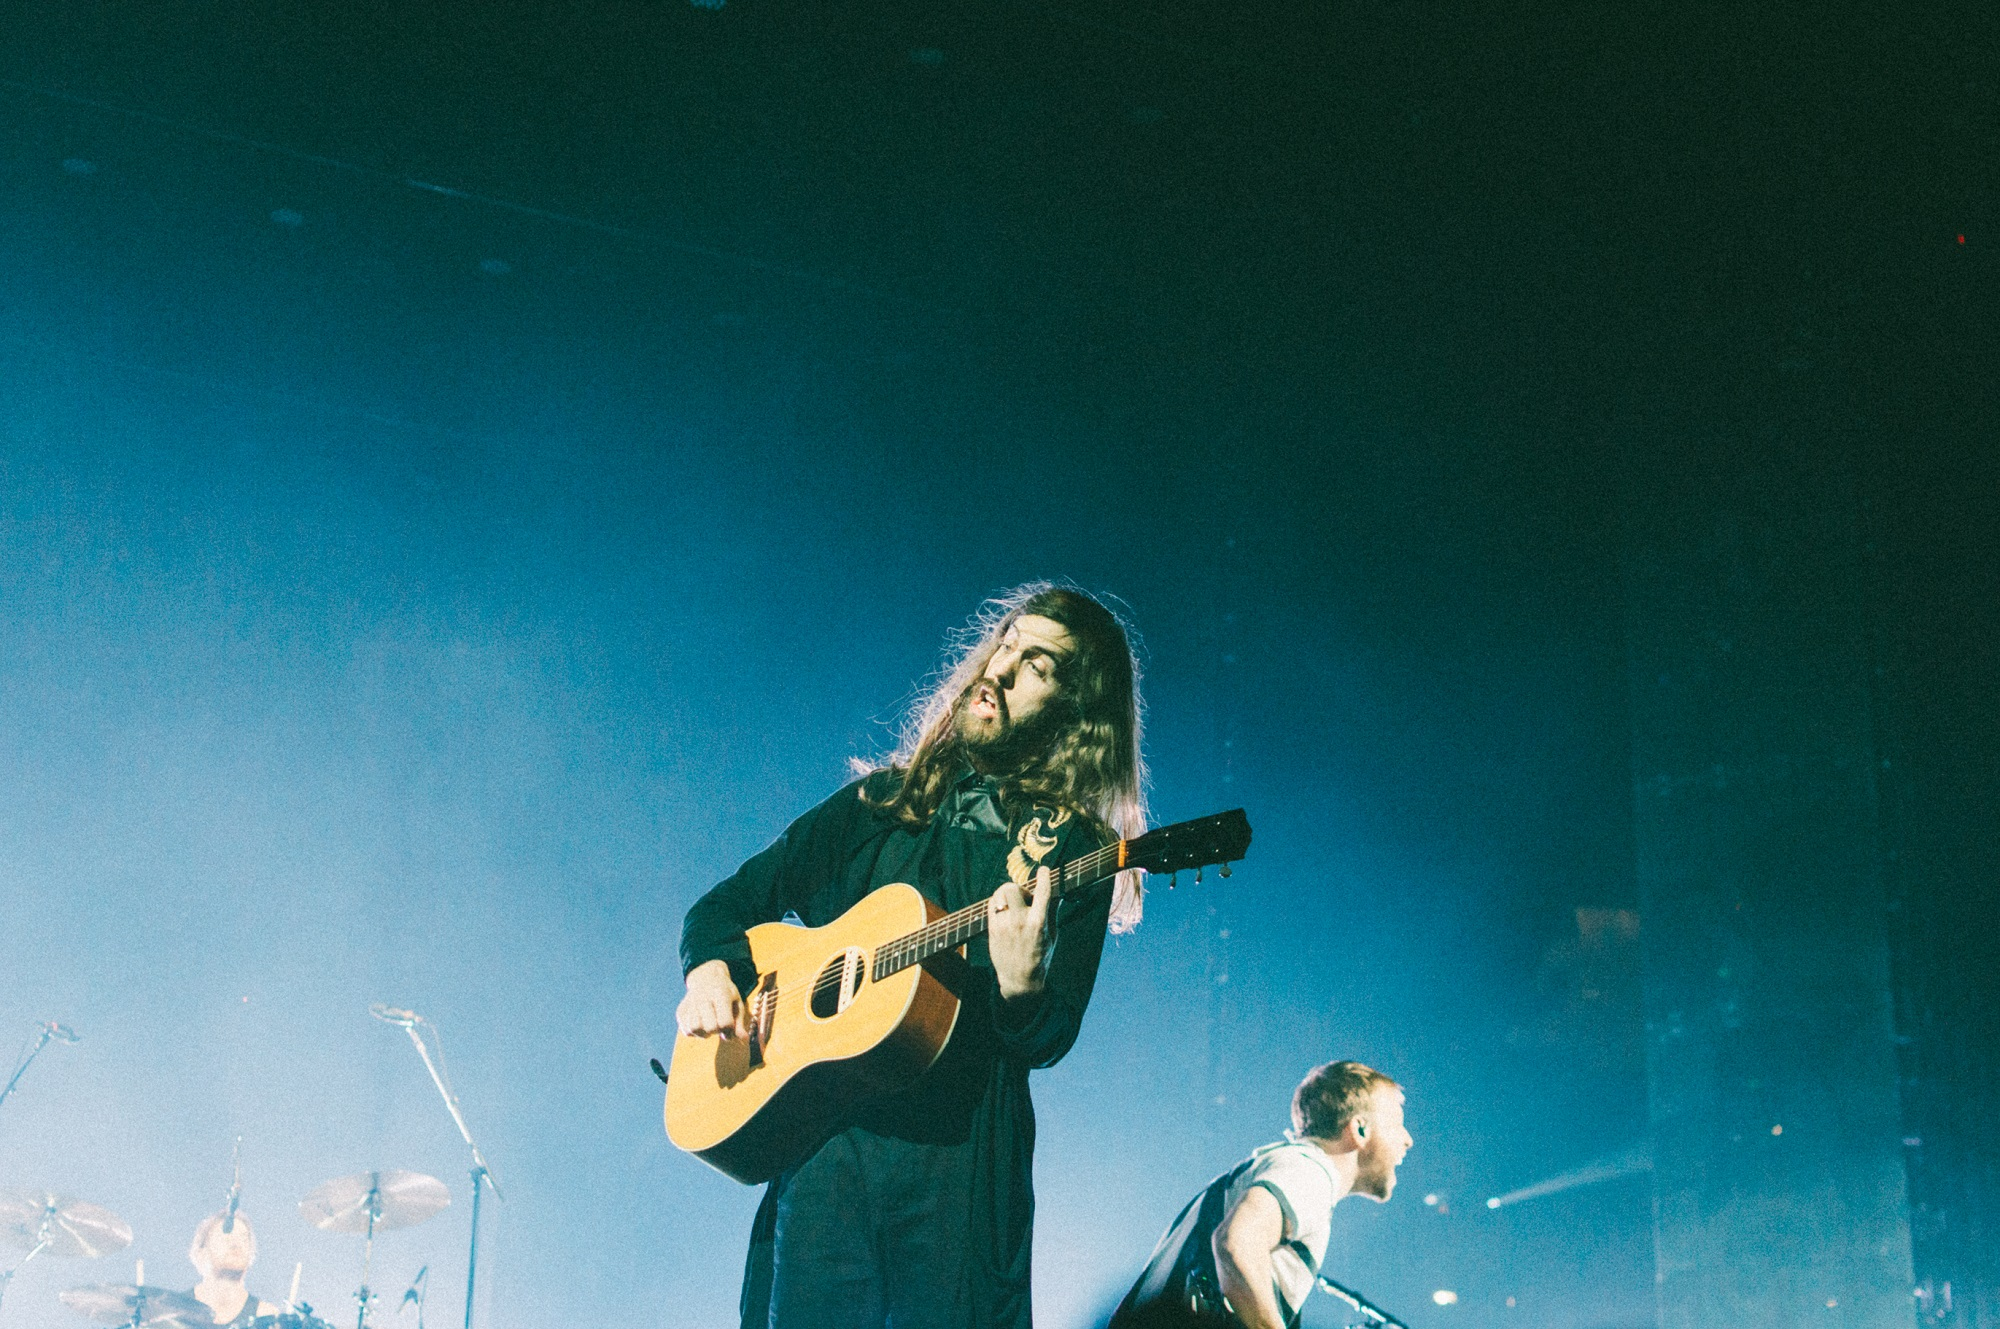 """Wayne Sermon of Imagine Dragons performs at Bridgestone Arena in Nashville, Tenn. on Wednesday, June 8, 2015, The performance was part of the band's """"Smoke + Mirrors"""" tour. (MTSU Sidelines / Andre Rowlett)"""